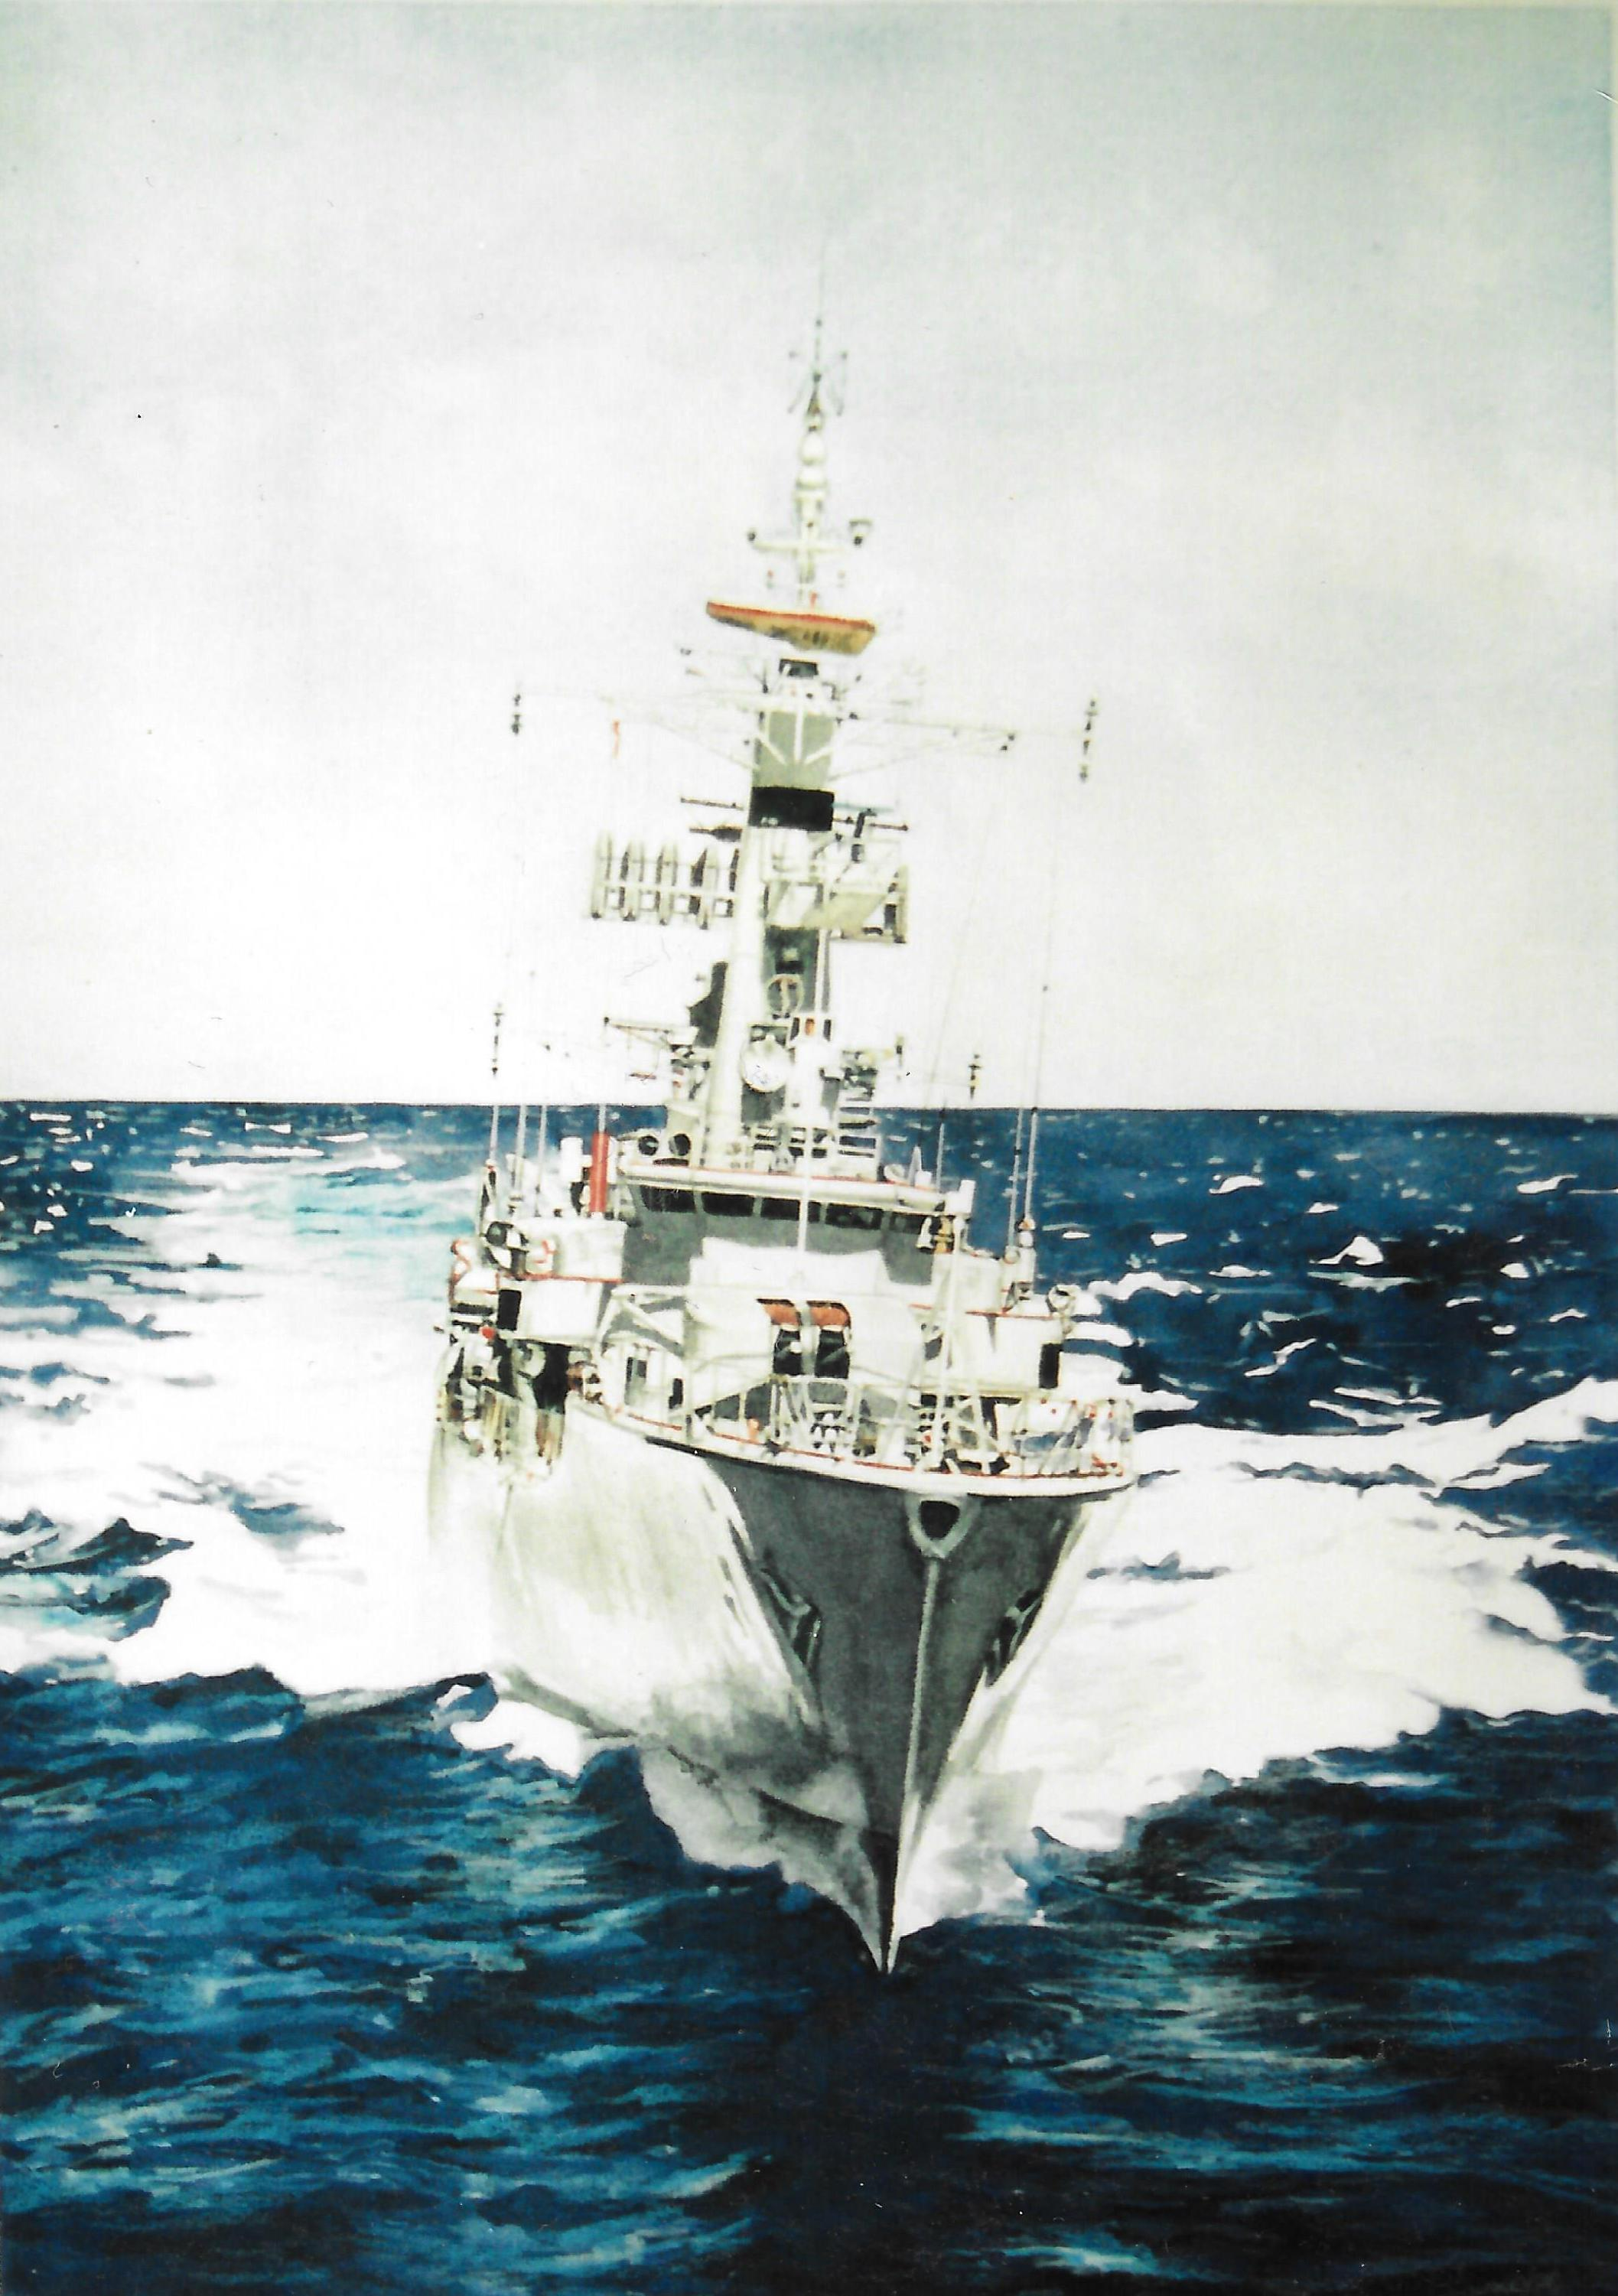 The Waikato   Watercolour on paper   A   vailable in two sizes as a limited edition print    on paper.   The painting depicts the Royal New Zealand Navy's (RNZN) ship, the HMNZS  Waikato  (F55) that was a Leander Batch 2TA frigate. Beginning its service in 1966, HMNZS  Waikato  was decommissioned from the RNZN in 1998 and sunk off the coast of Tutukaka New Zealand on 18 December 2000 as an artificial reef.  My husband served on the Waikato in the RNZN before we met.